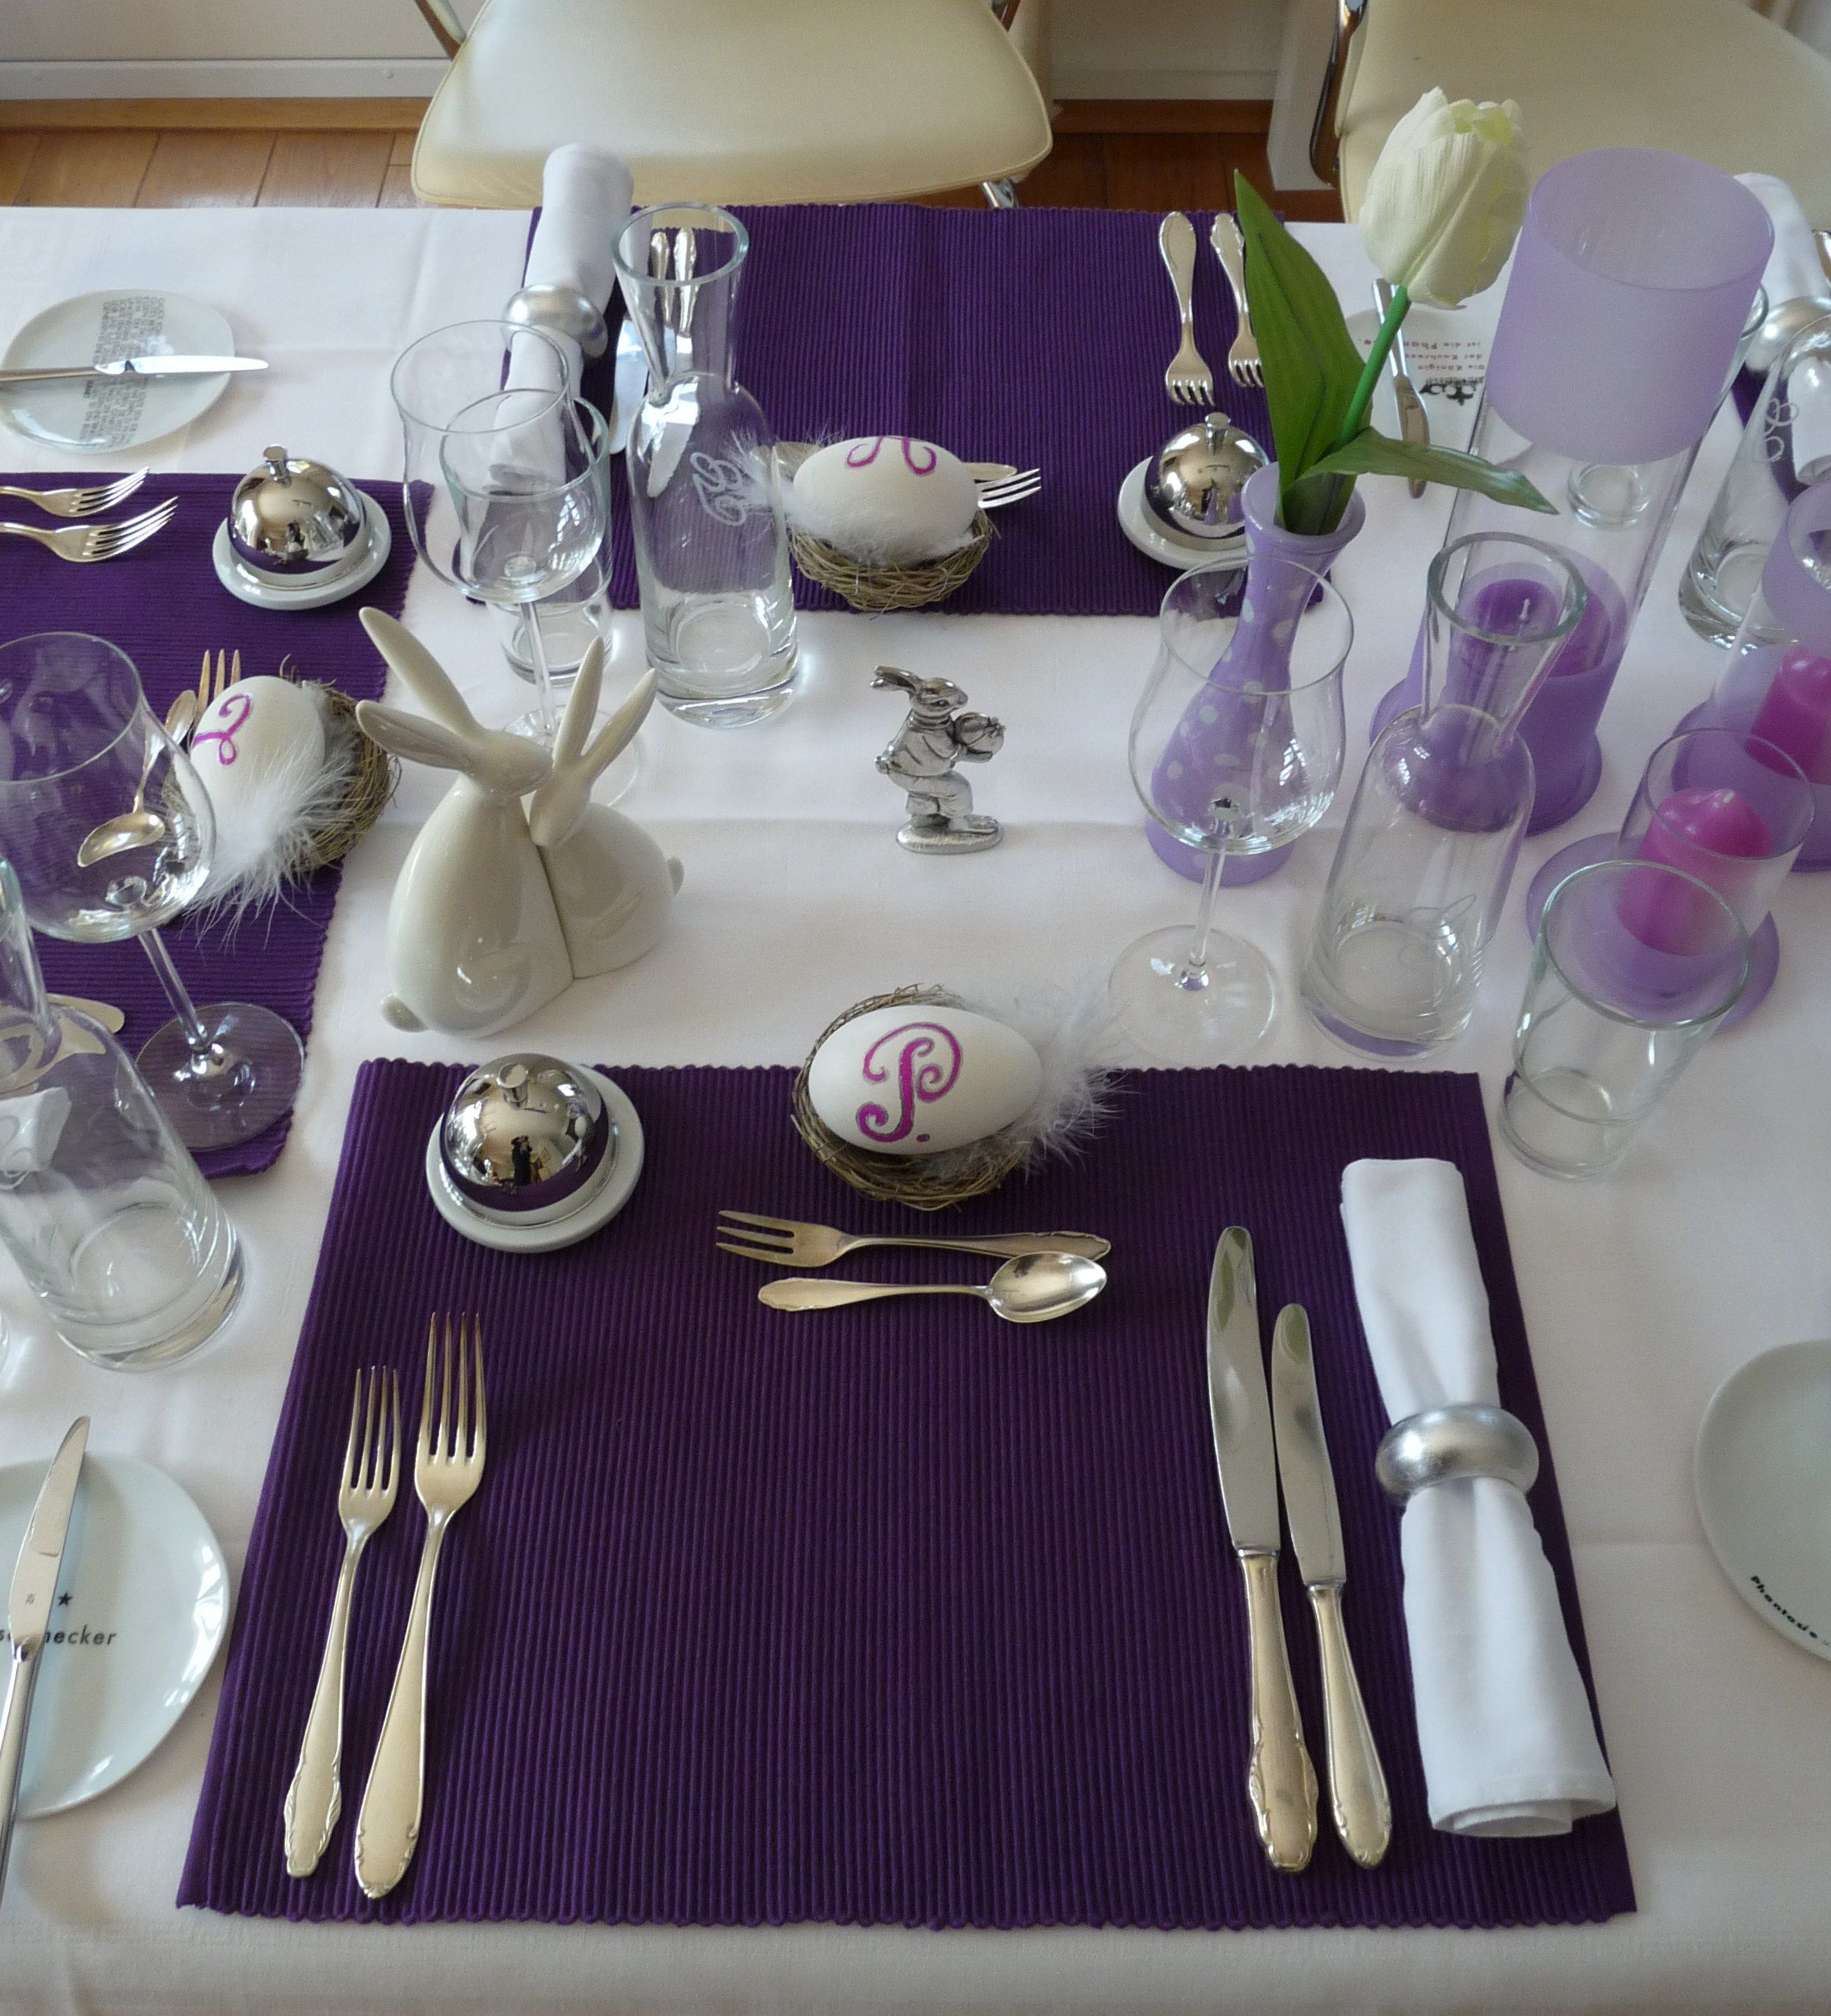 dining-room-interior-marvelous-easter-table-decoration-ideas-with-square-purple-placemats-and-chrome-metal-cutlery-sets-also-white-tulips-flower-on-purple-glass-jar-famous-diy-easter-table-decoration.jpg (2489×2741)